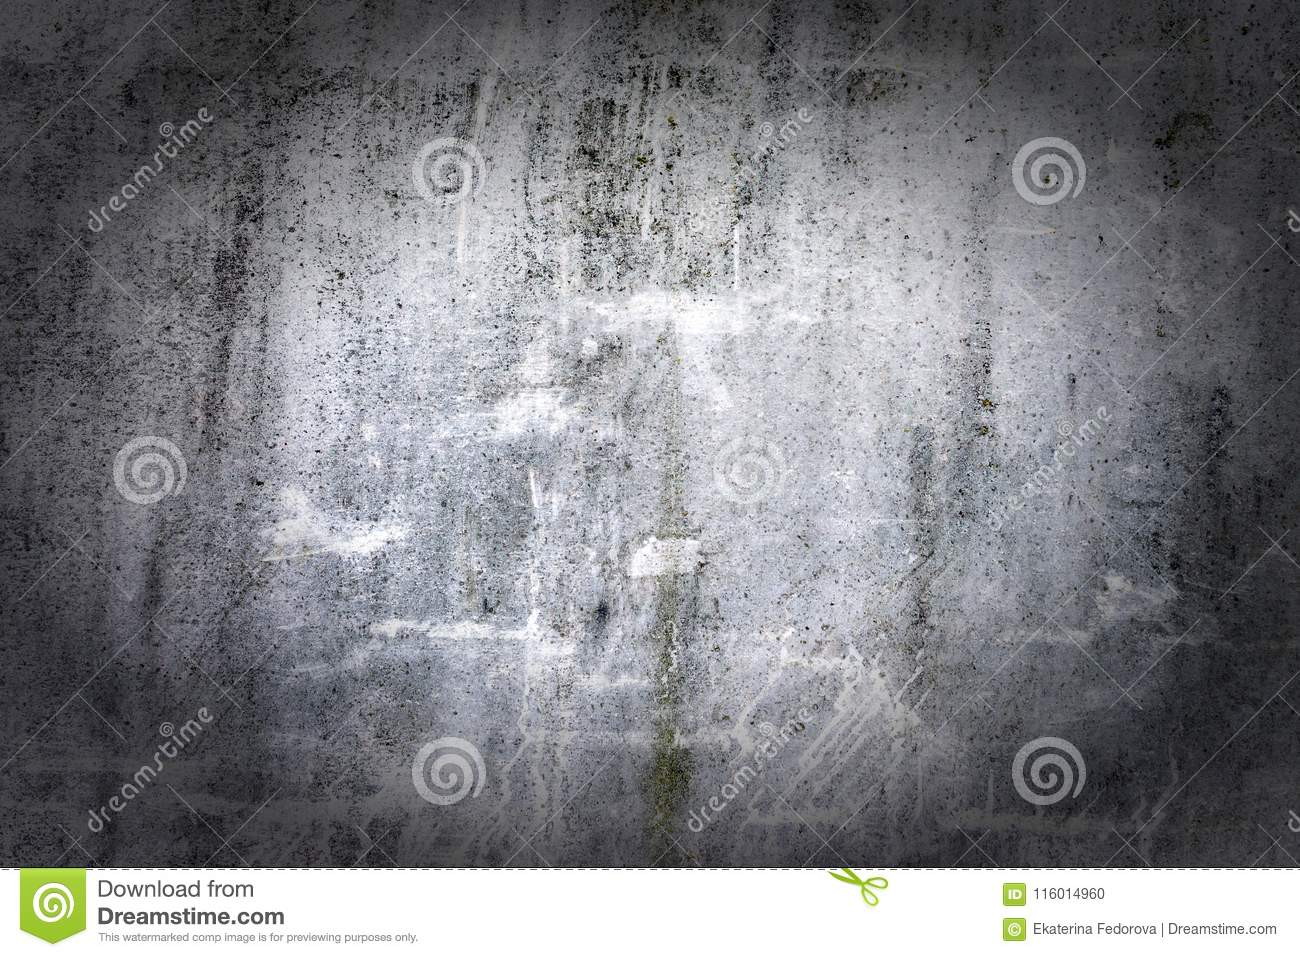 dark gray wall in scratches and cracks the texture of cracked paint